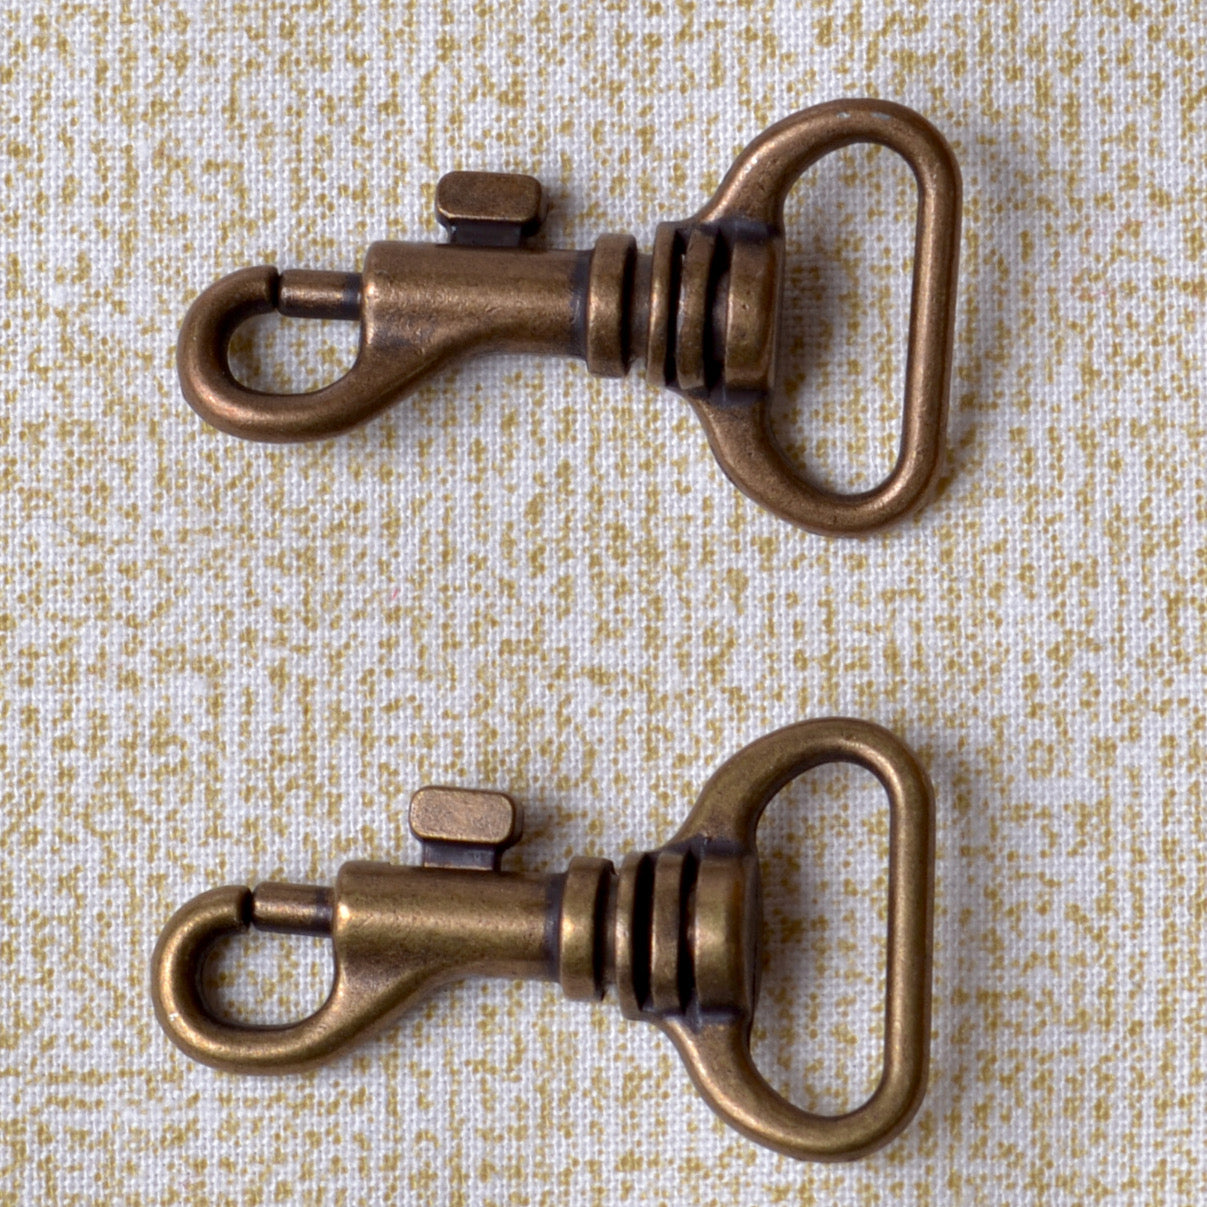 small swivel clips